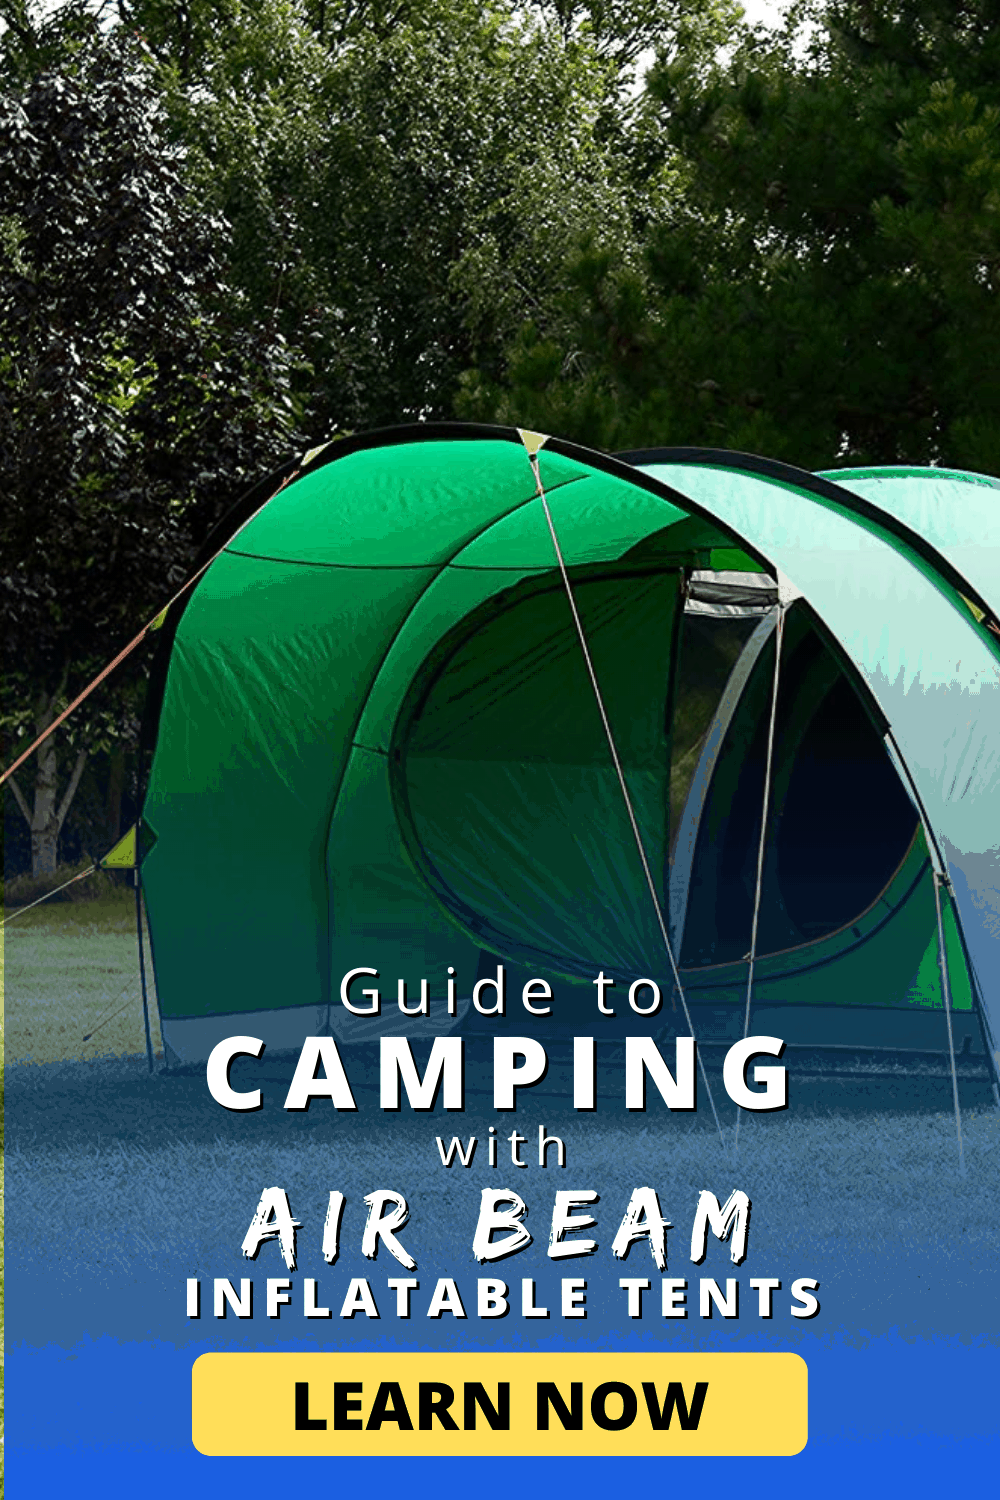 Guide to Camping with Air beam Inflatable Tents | Learn now!